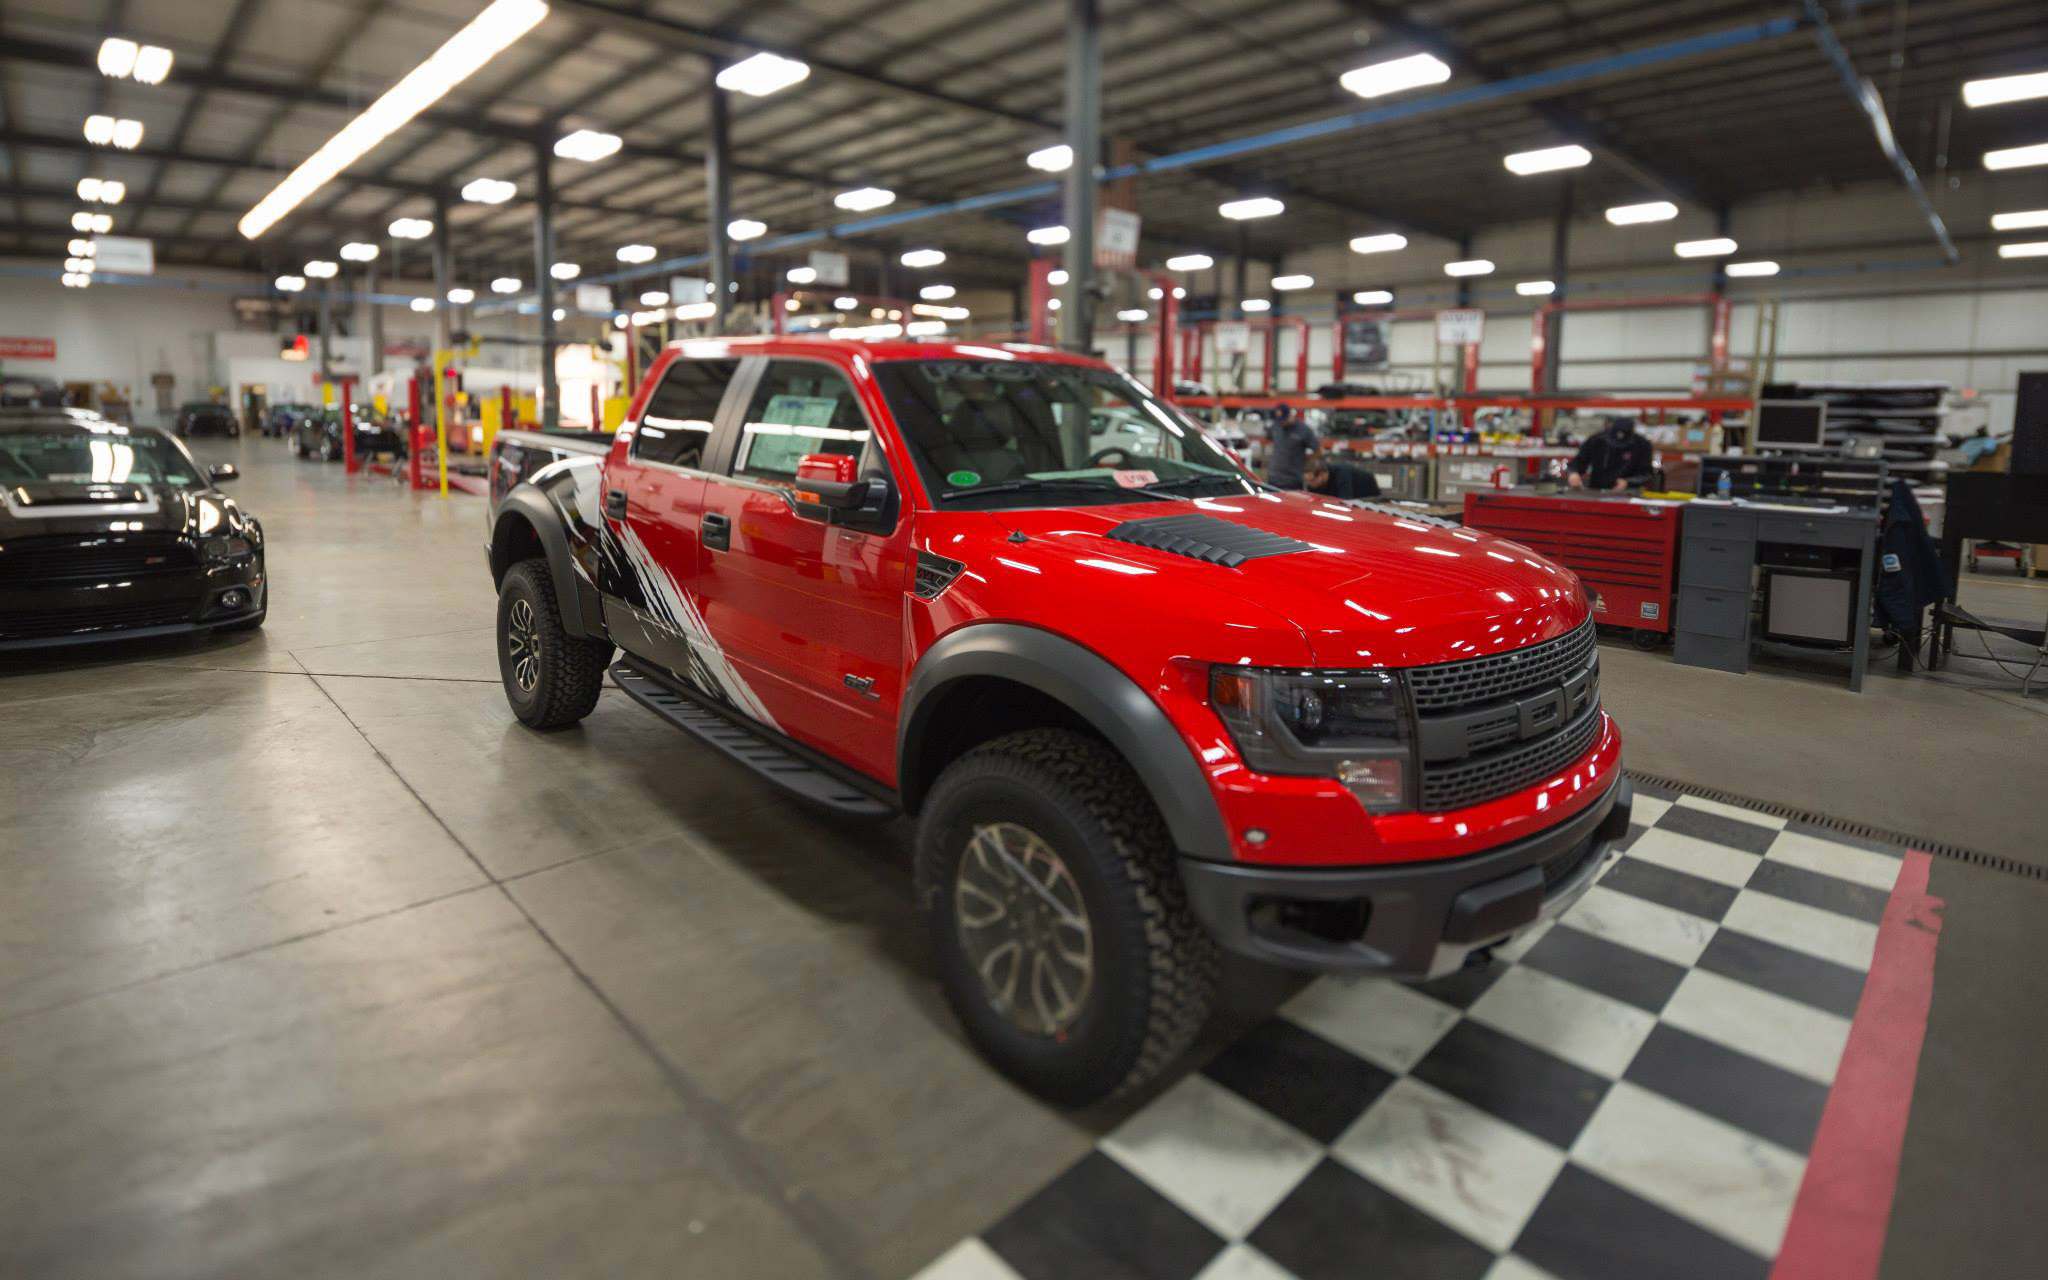 2014 Roush Off Road Ford F 150 Svt Raptor With Custom Graphics